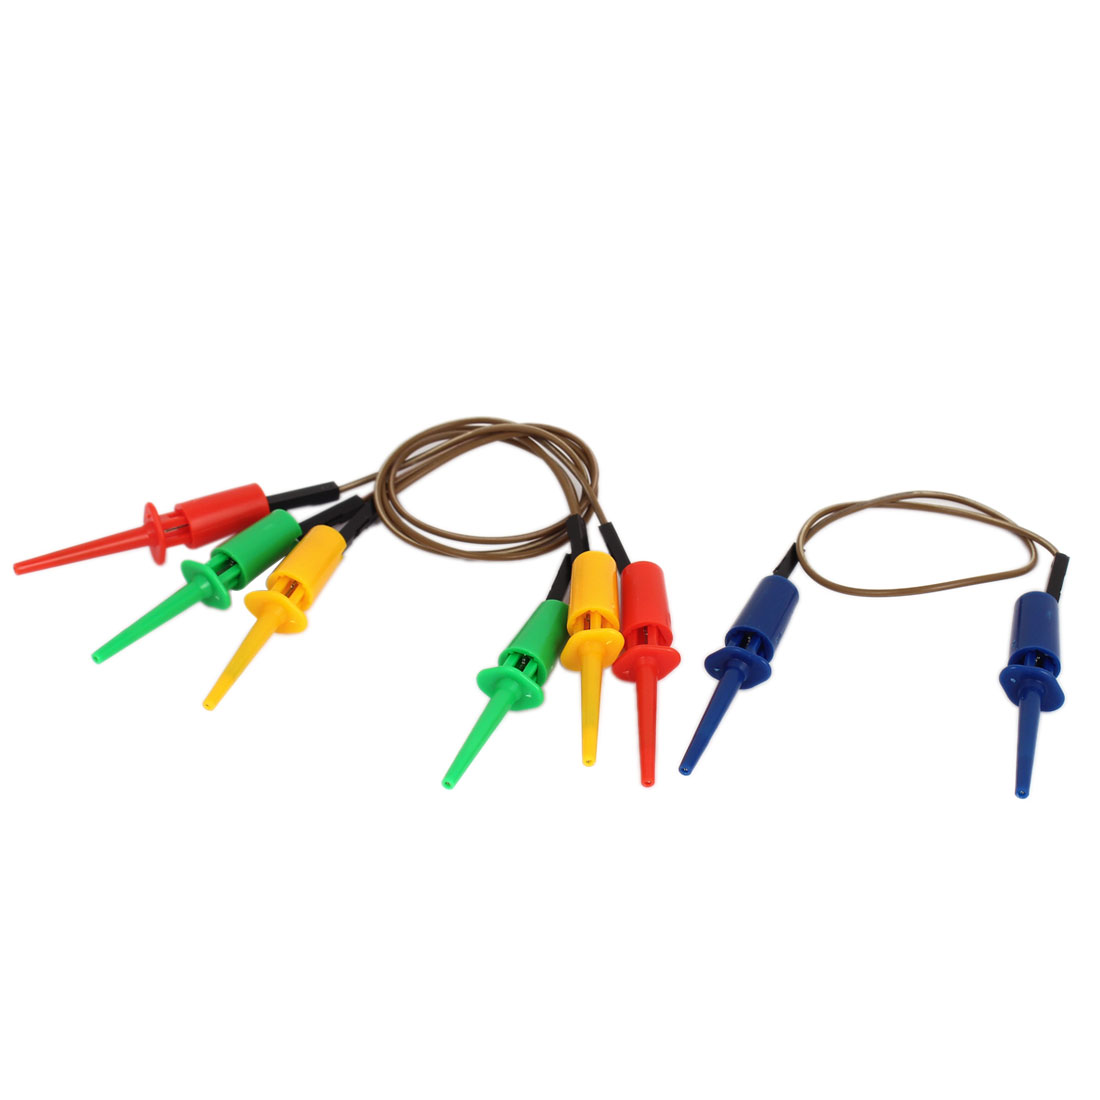 4pcs 28cm Female to Female Test Hook Clip Leads Probe Jumper Cable 4 Colors